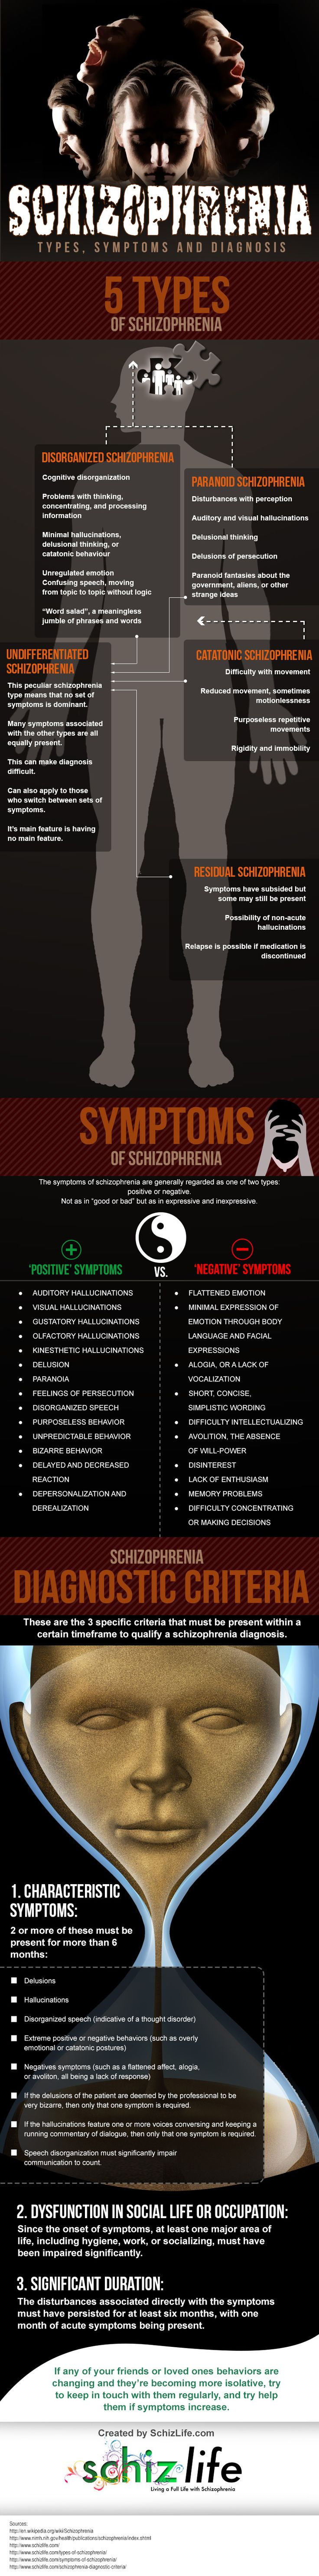 Schizophrenia Infographic on the Types, Symptoms, and Diagnosis of Schizophrenia. http://www.schizlife.com/is-schizophrenia-genetic/